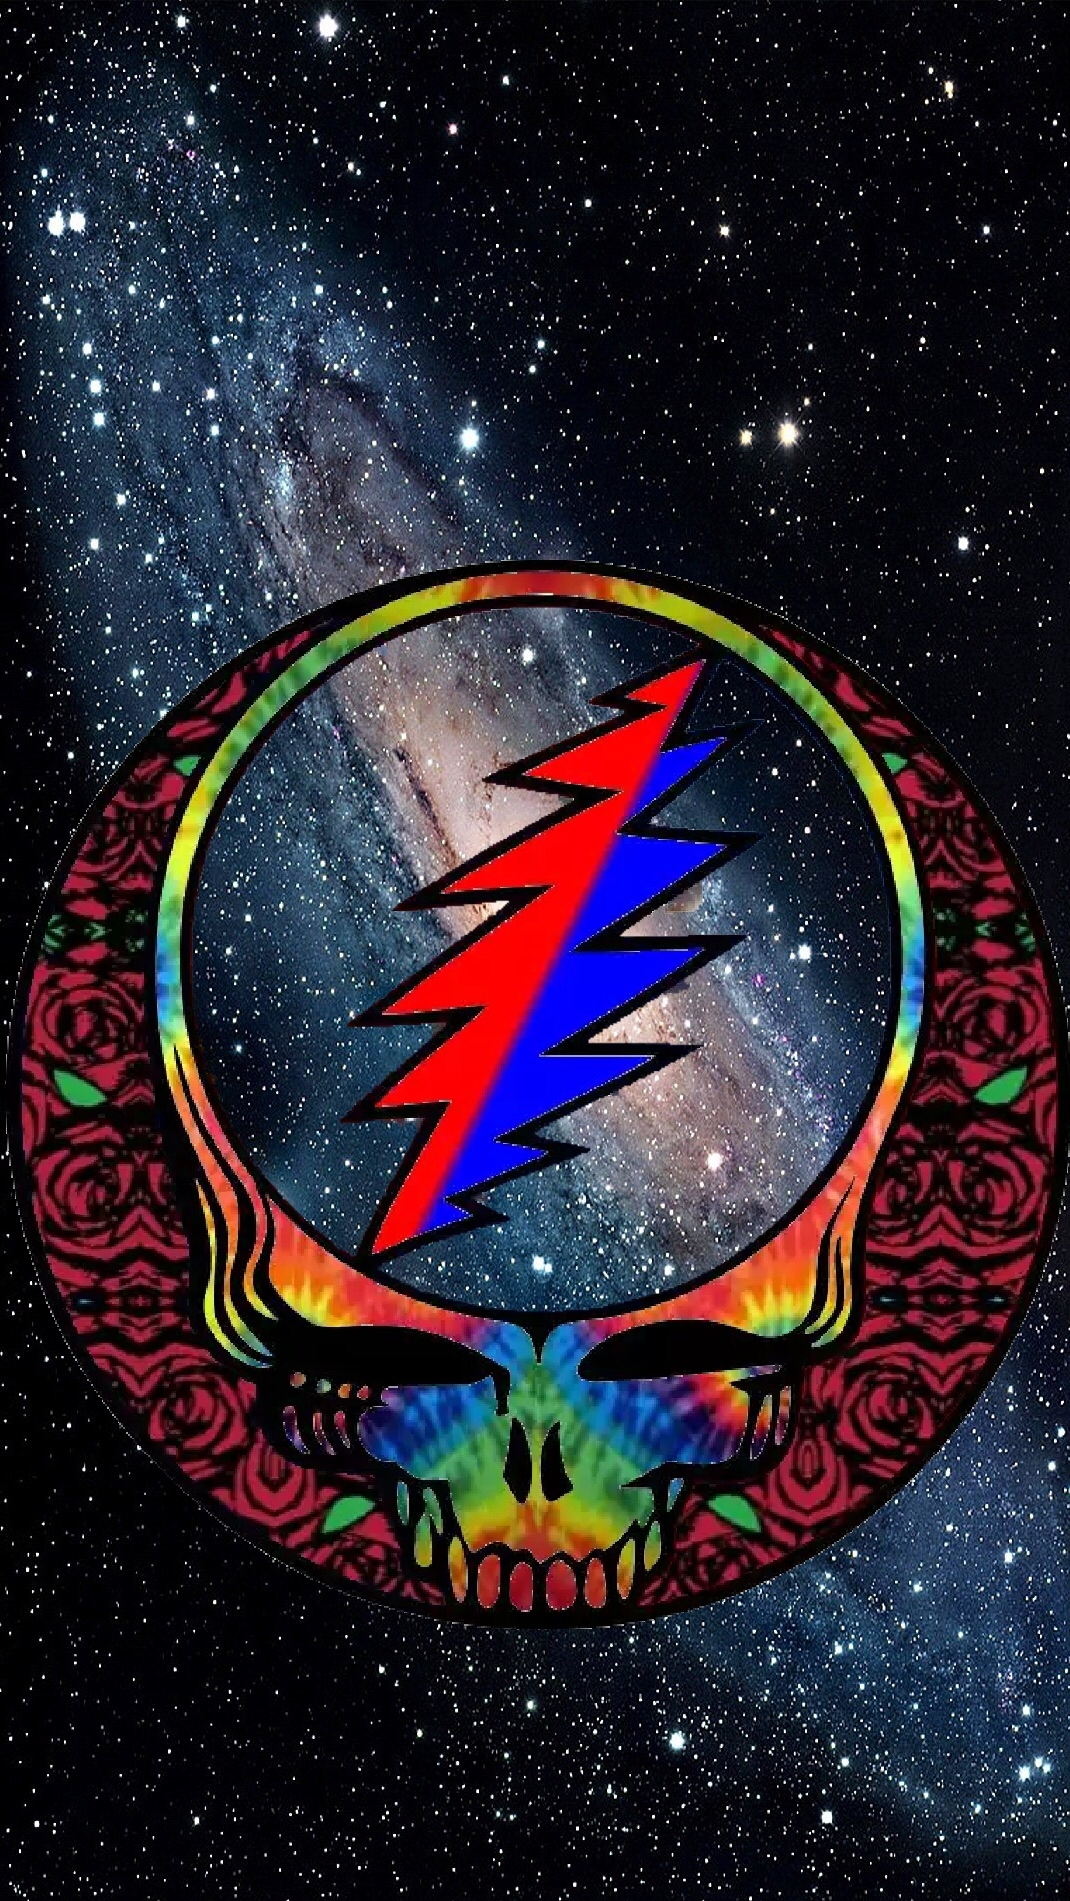 steal your face - album on imgur